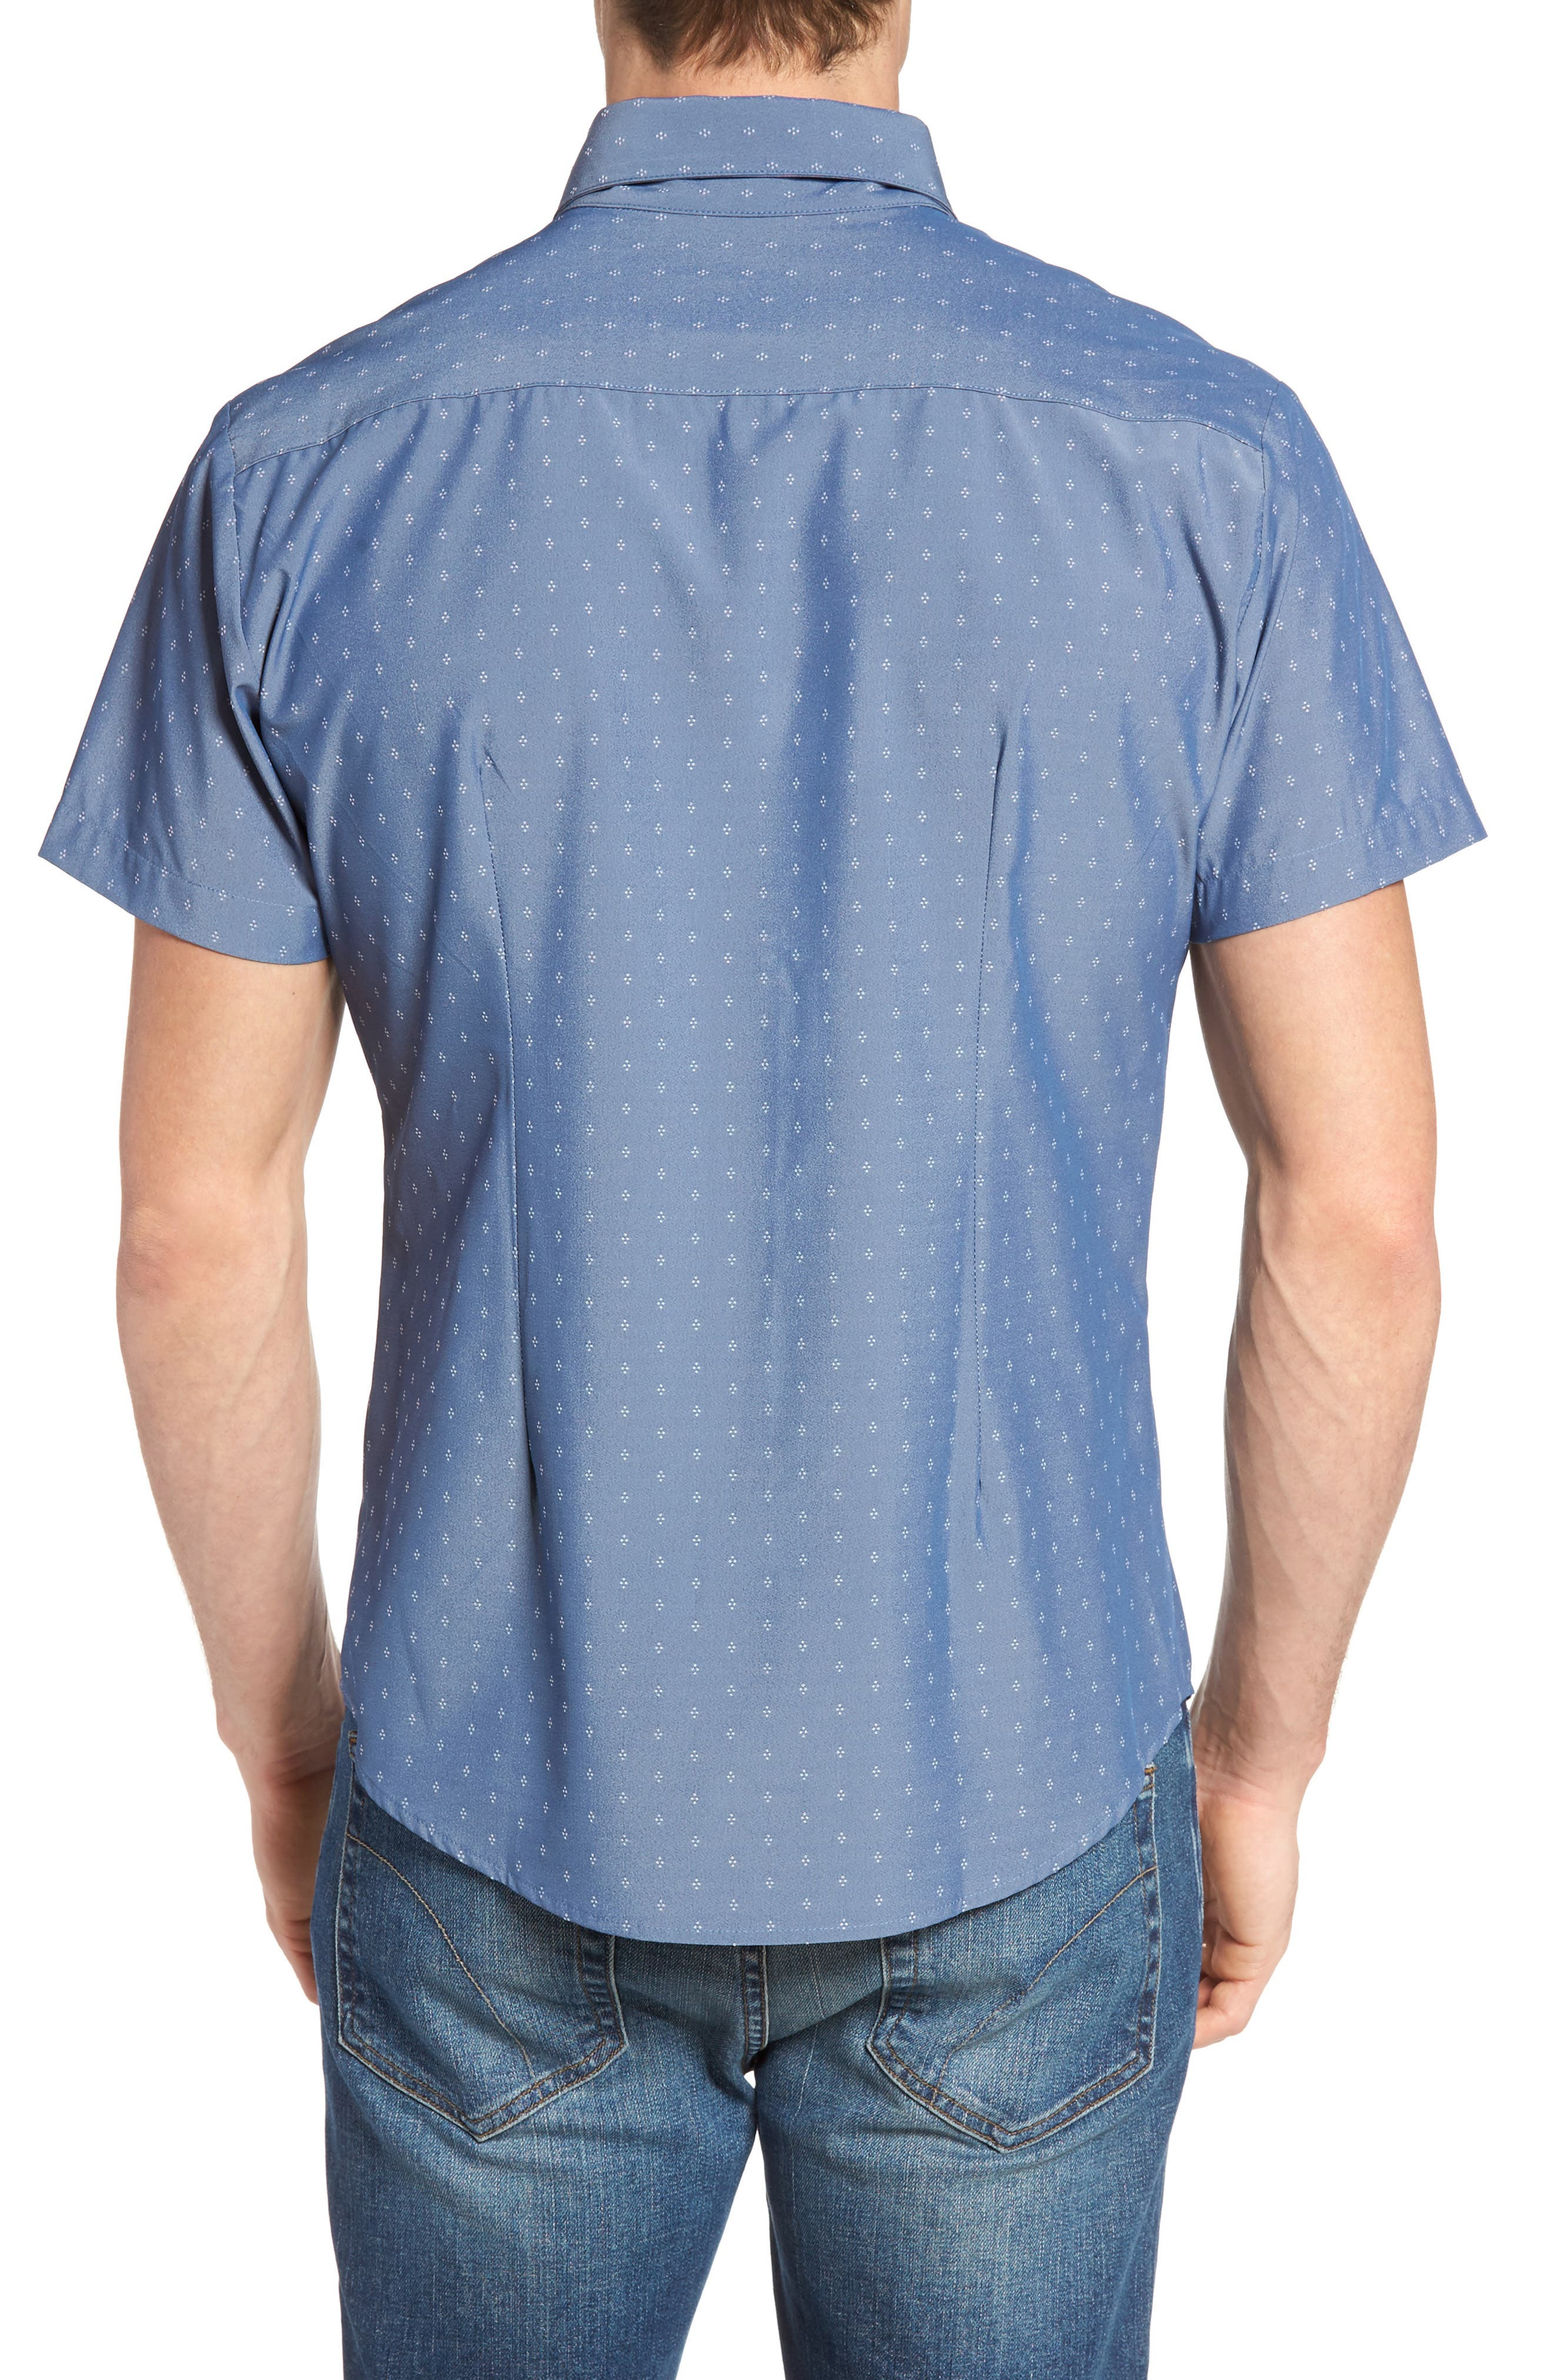 Alternate Image 2  - Mizzen+Main Kingston Poseidon Slim Fit Print Performance Sport Shirt